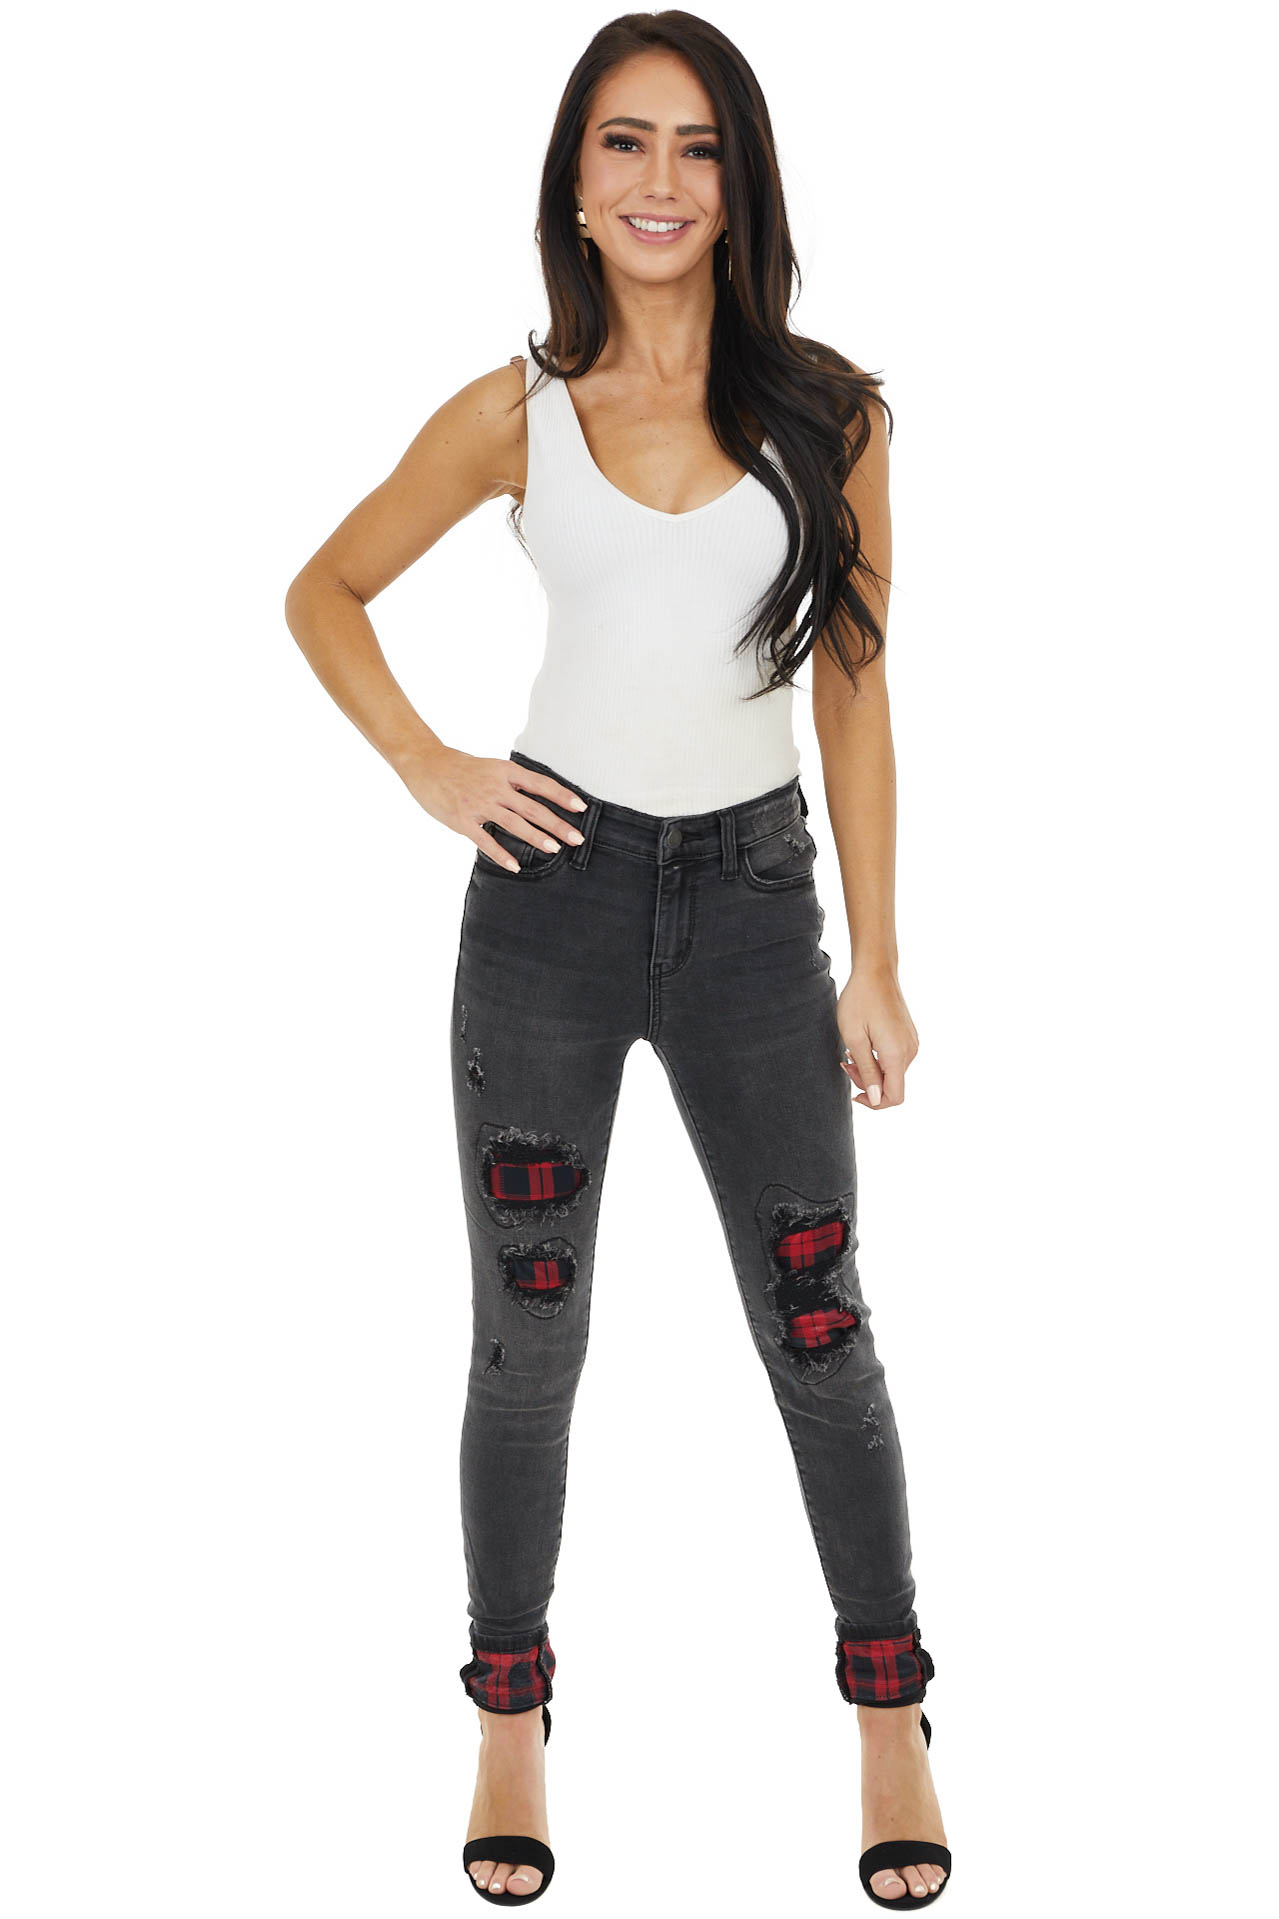 Faded Black Mid Rise Jeans with Plaid Patches and Cuffs